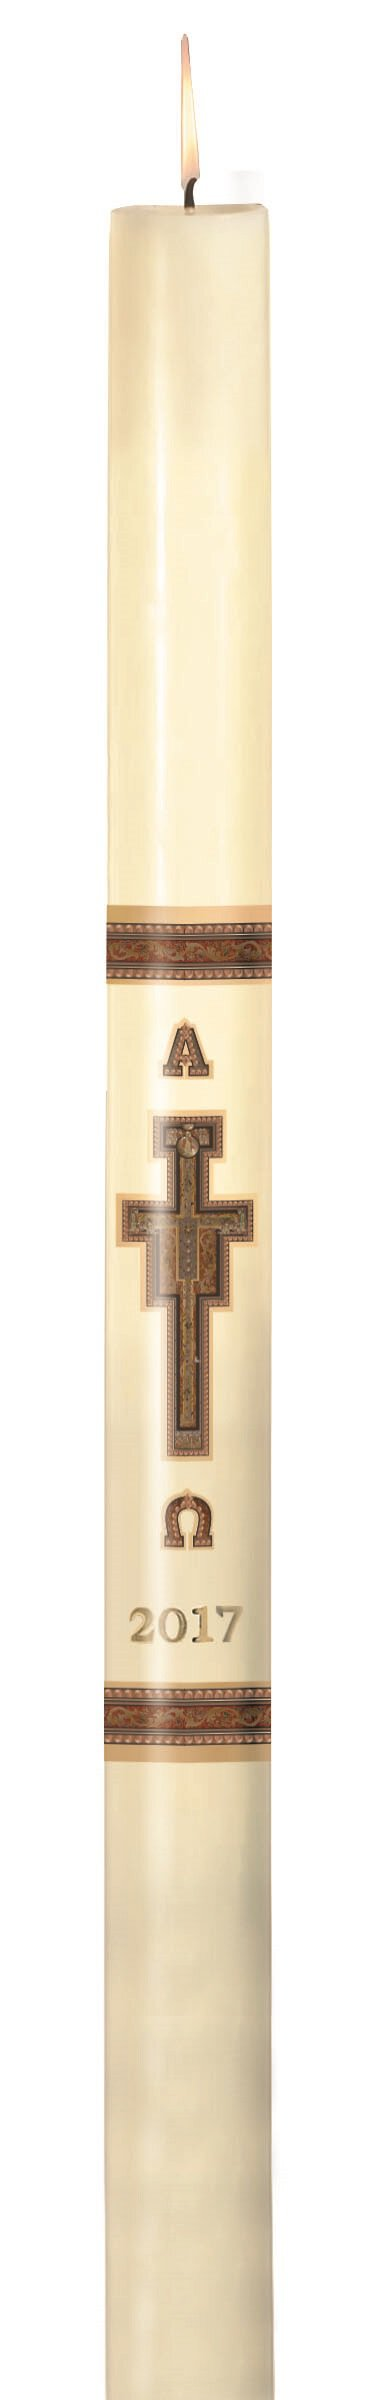 No 2 San Damiano Paschal Candle